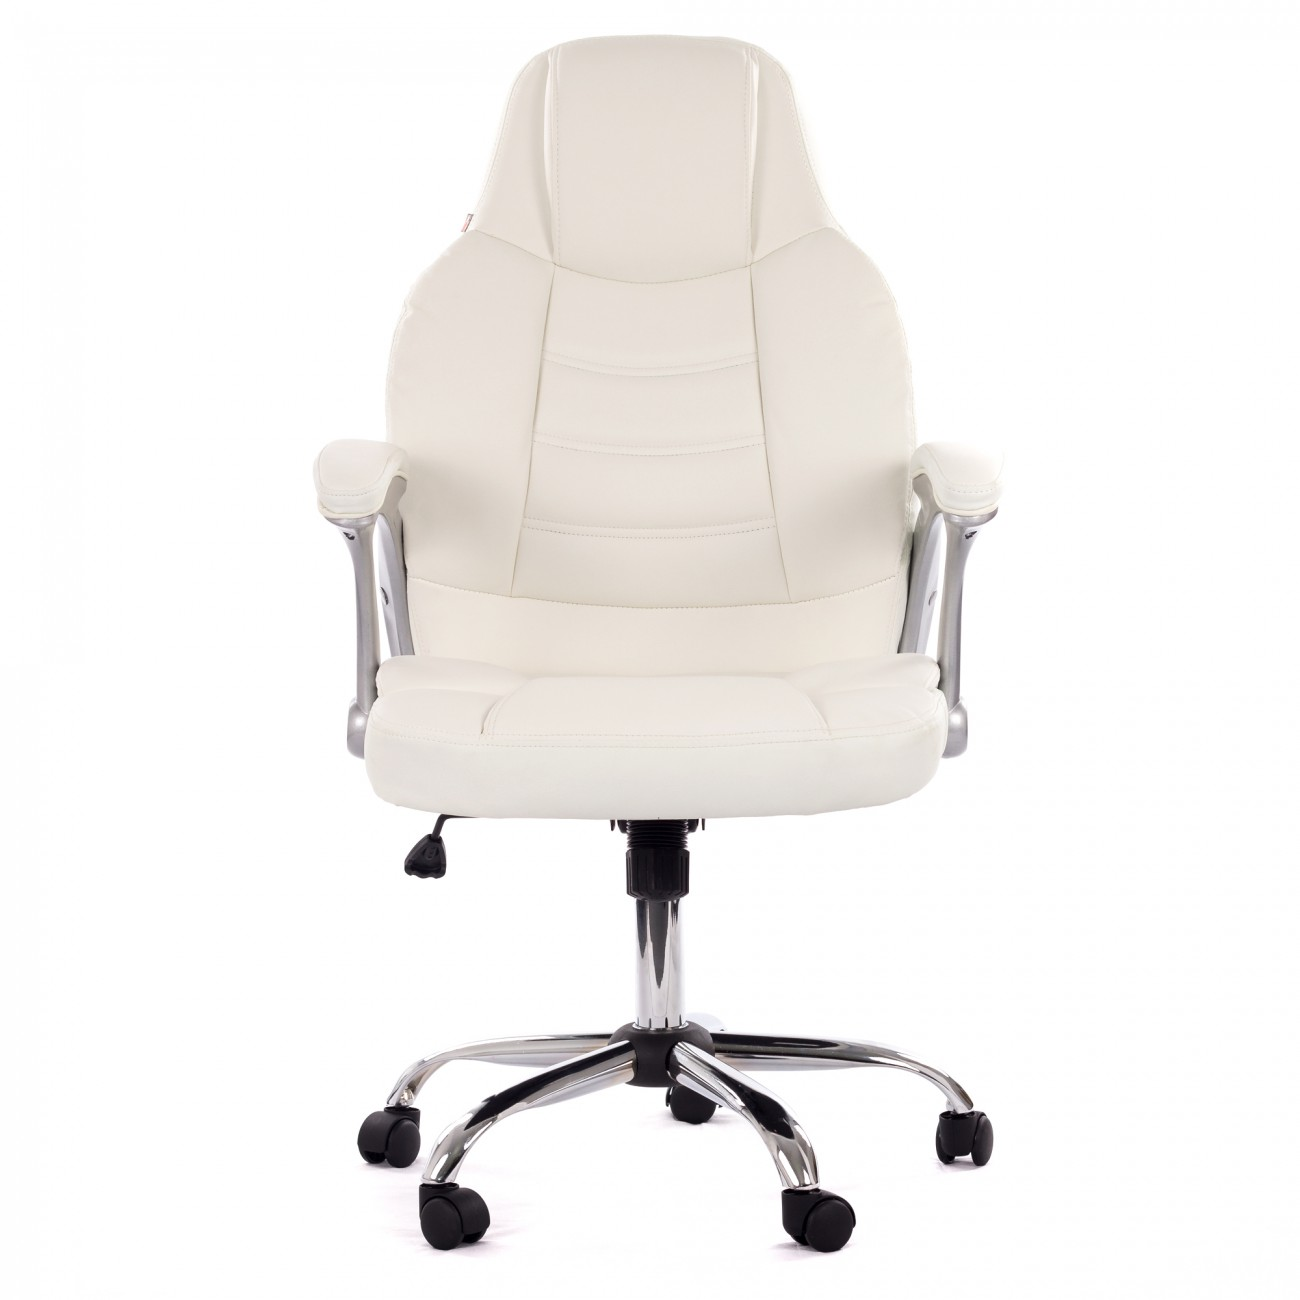 MY SIT Office Chair Venecia Deluxe Faux Leather In White U2013 Bild 2